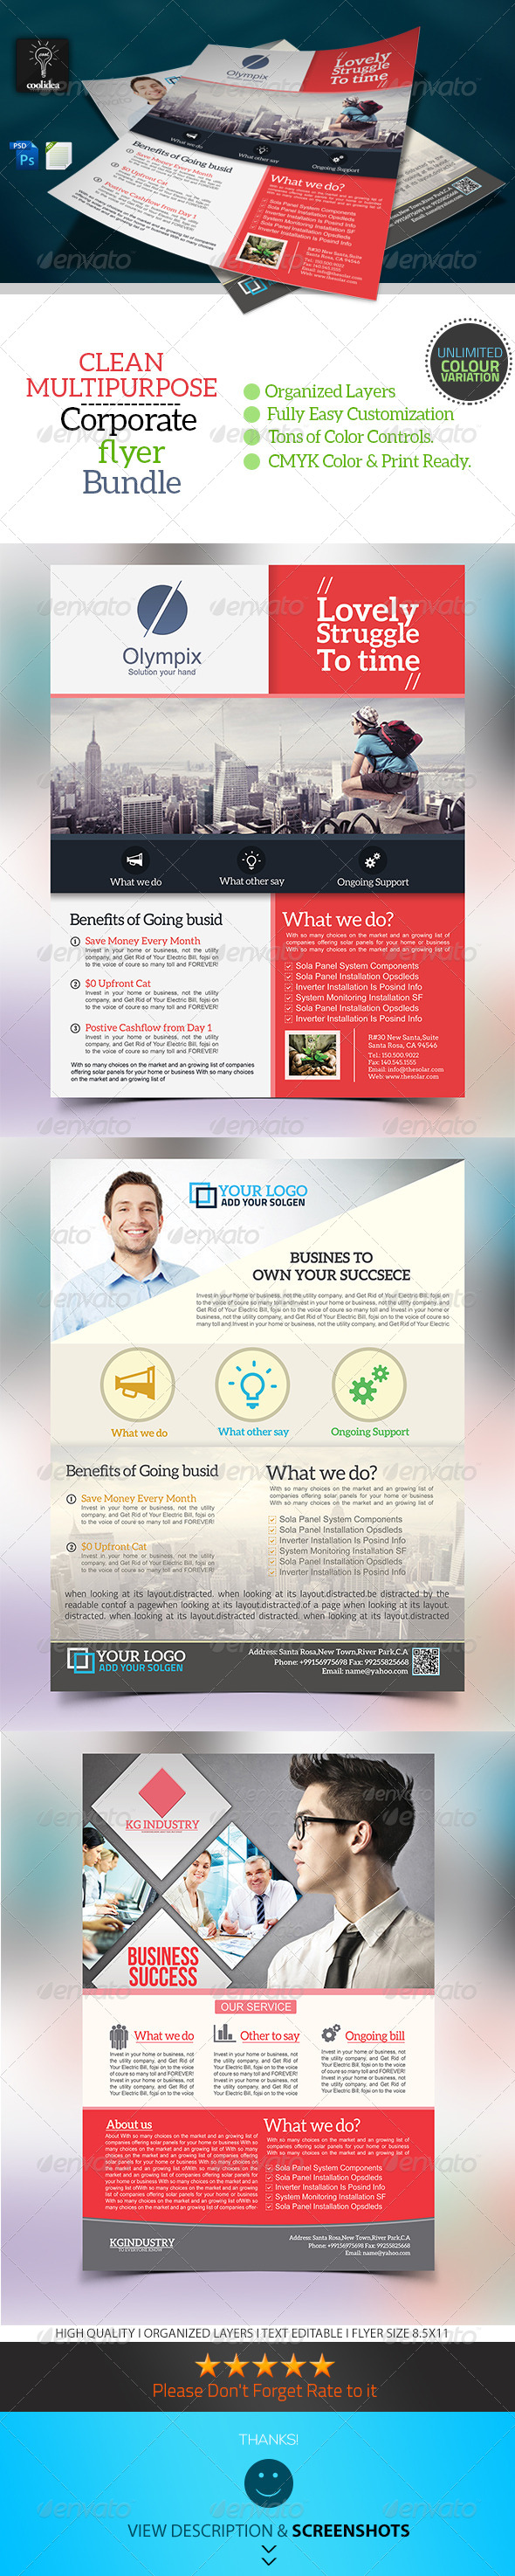 GraphicRiver Corporate Flyer Bundle Vol 01 6900533